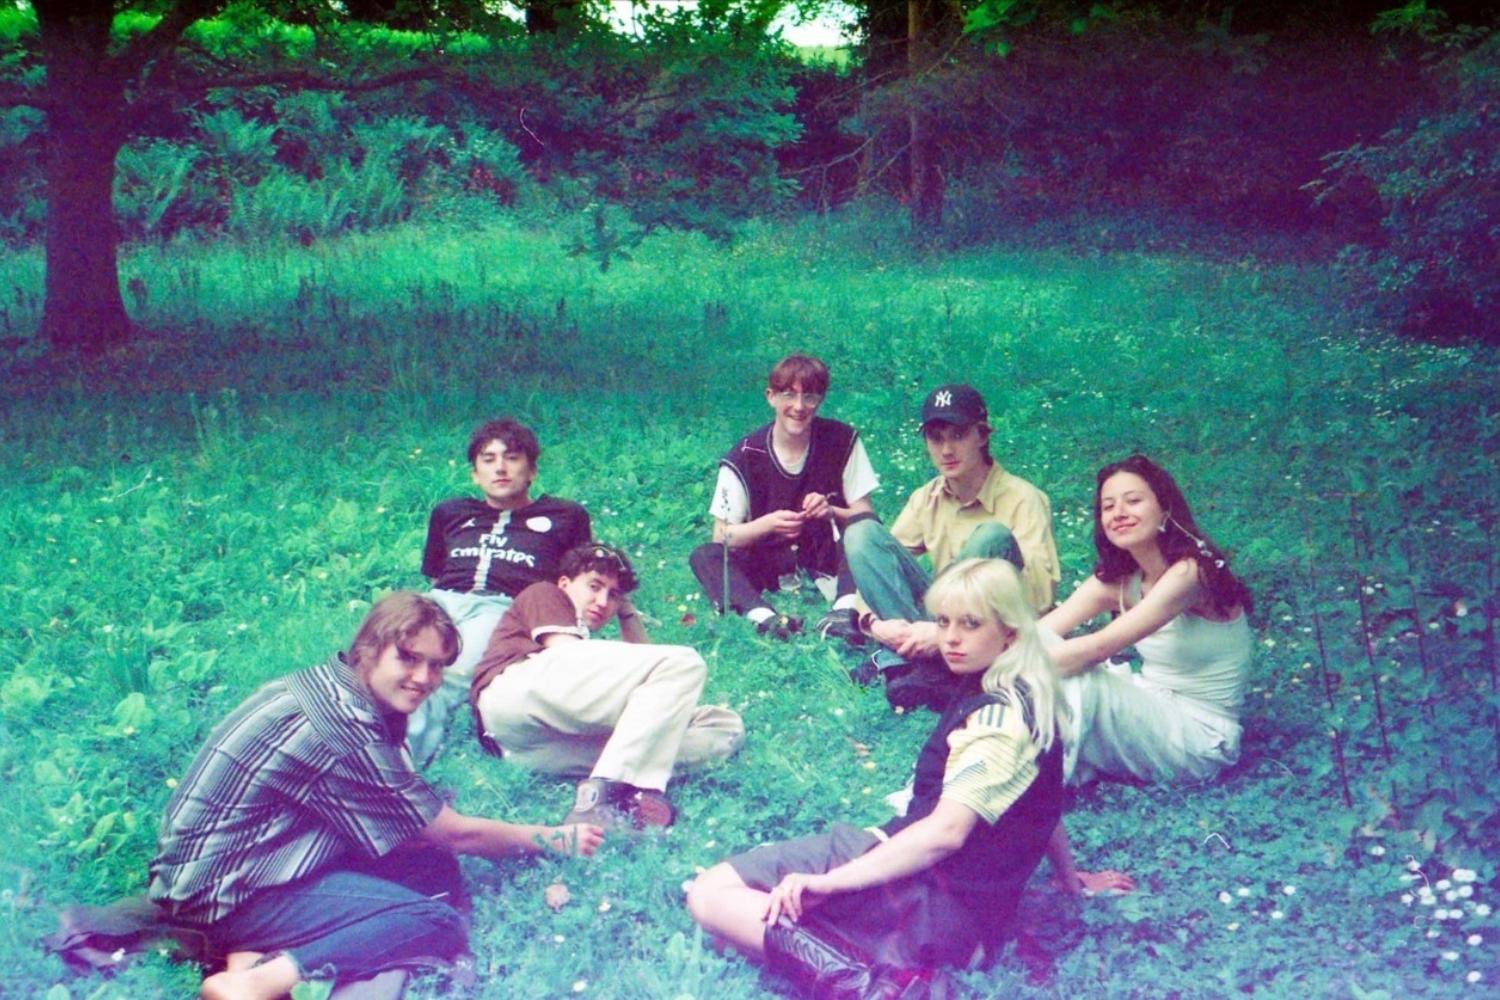 Black Country, New Road release new track 'Sunglasses'